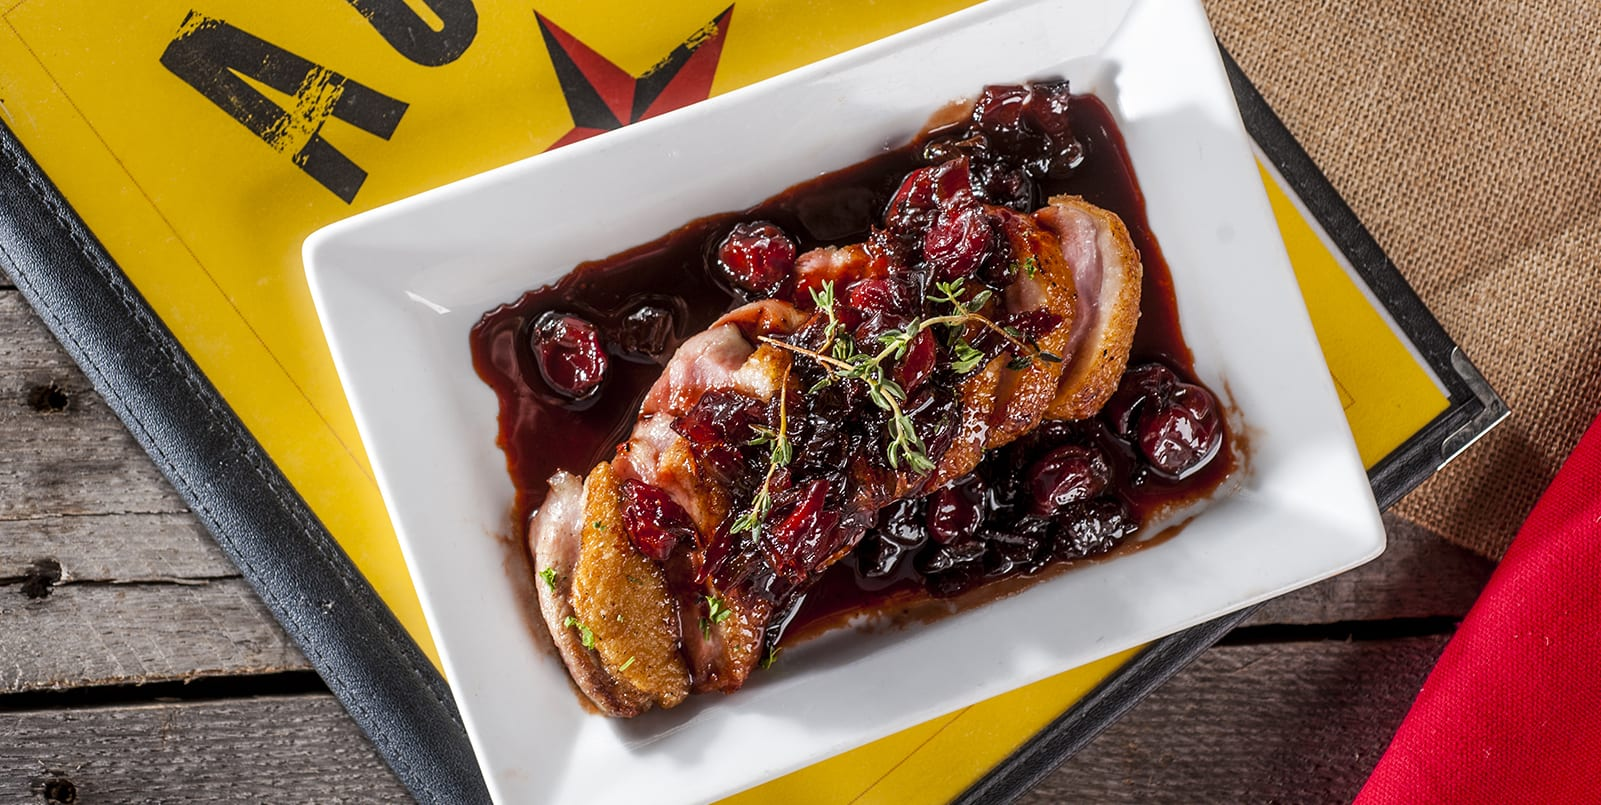 Gastrique Cuisine Duck Breasts With Cheerwine And Cherry Gastrique The